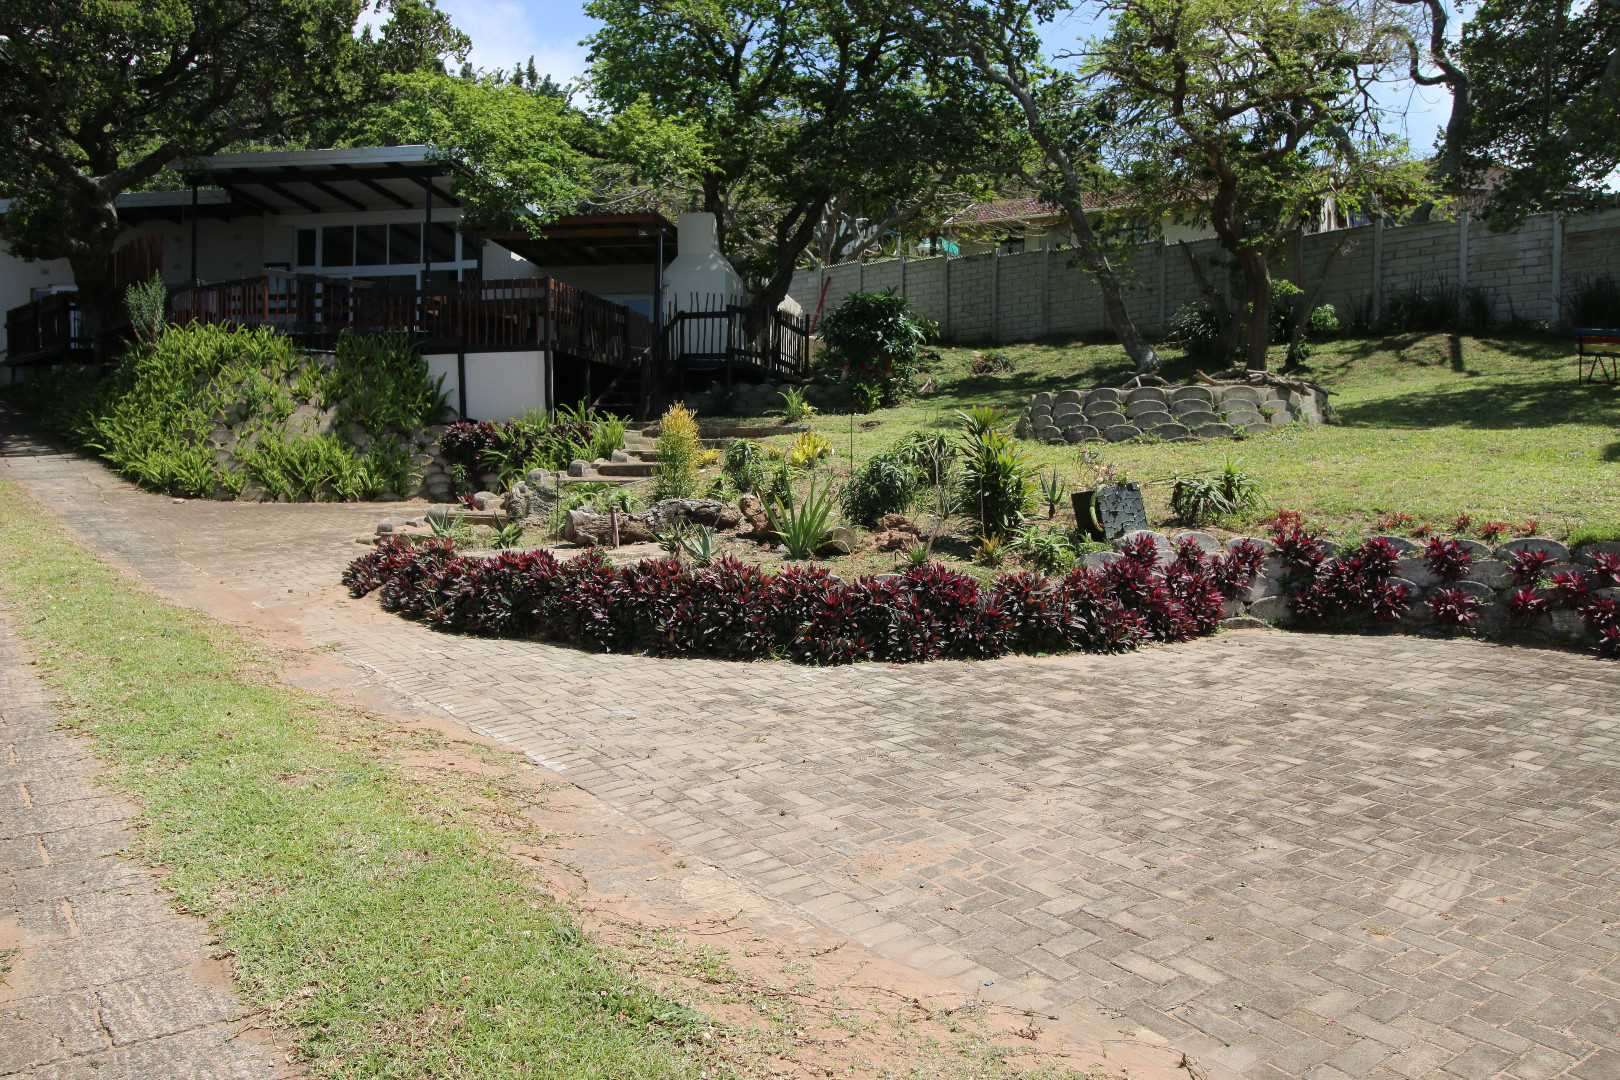 Garden and parking space